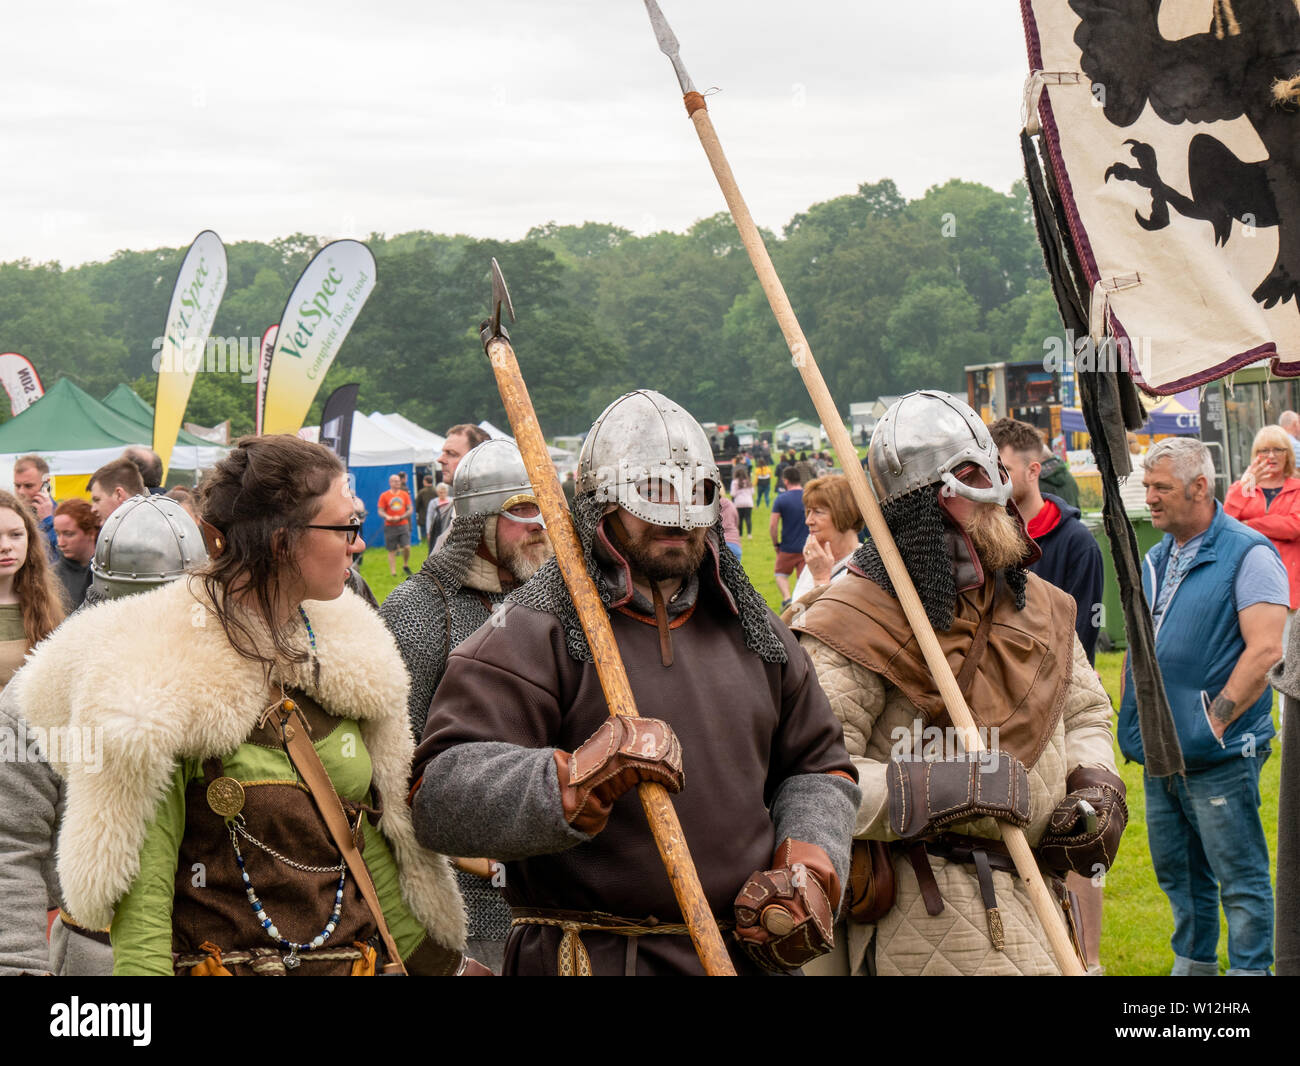 Antrim, Northern Ireland, UK, 29 June 2019: The Irish Game Fair and Fine Food Festival, Shane's Castle. Battle of Antrim re- enactment by Living History Ireland - Stock Image